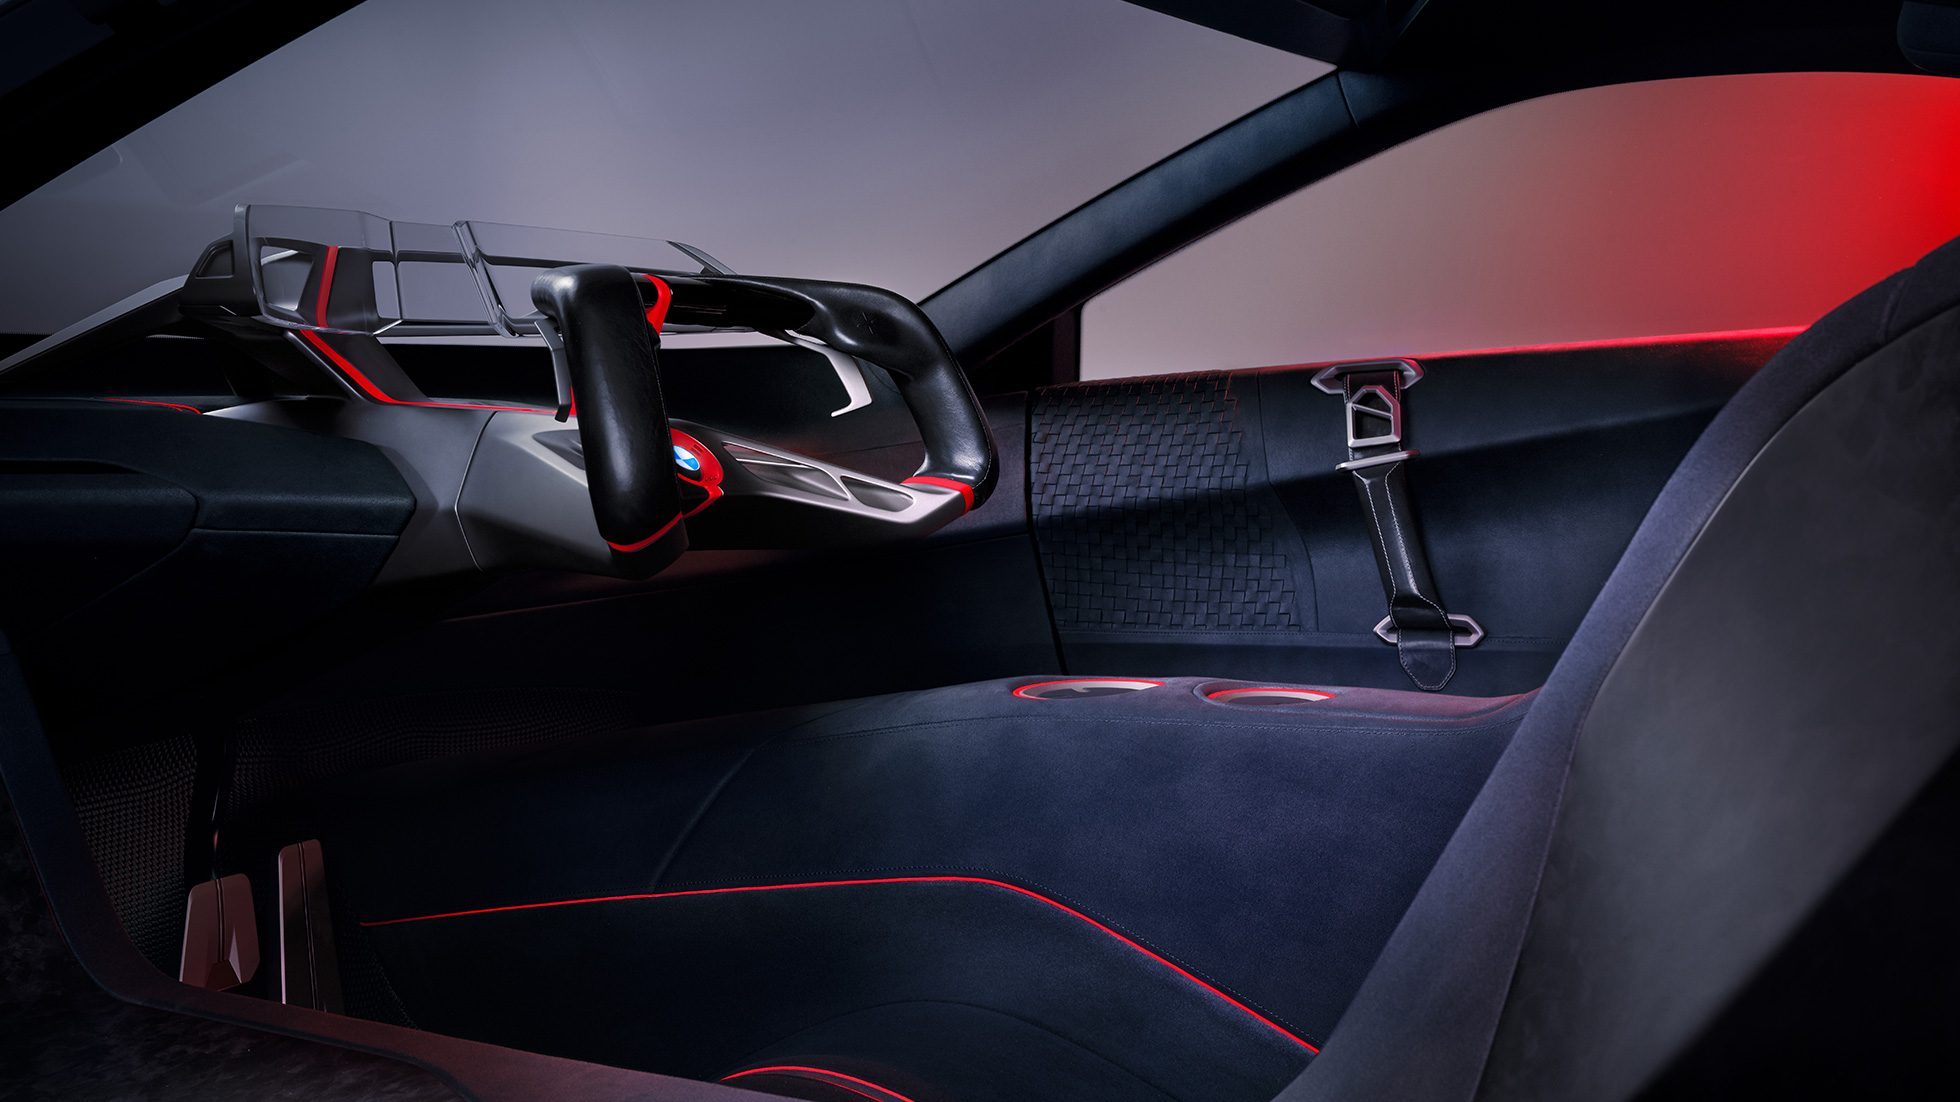 BMW Vision M NEXT, kupé, design, barnesete